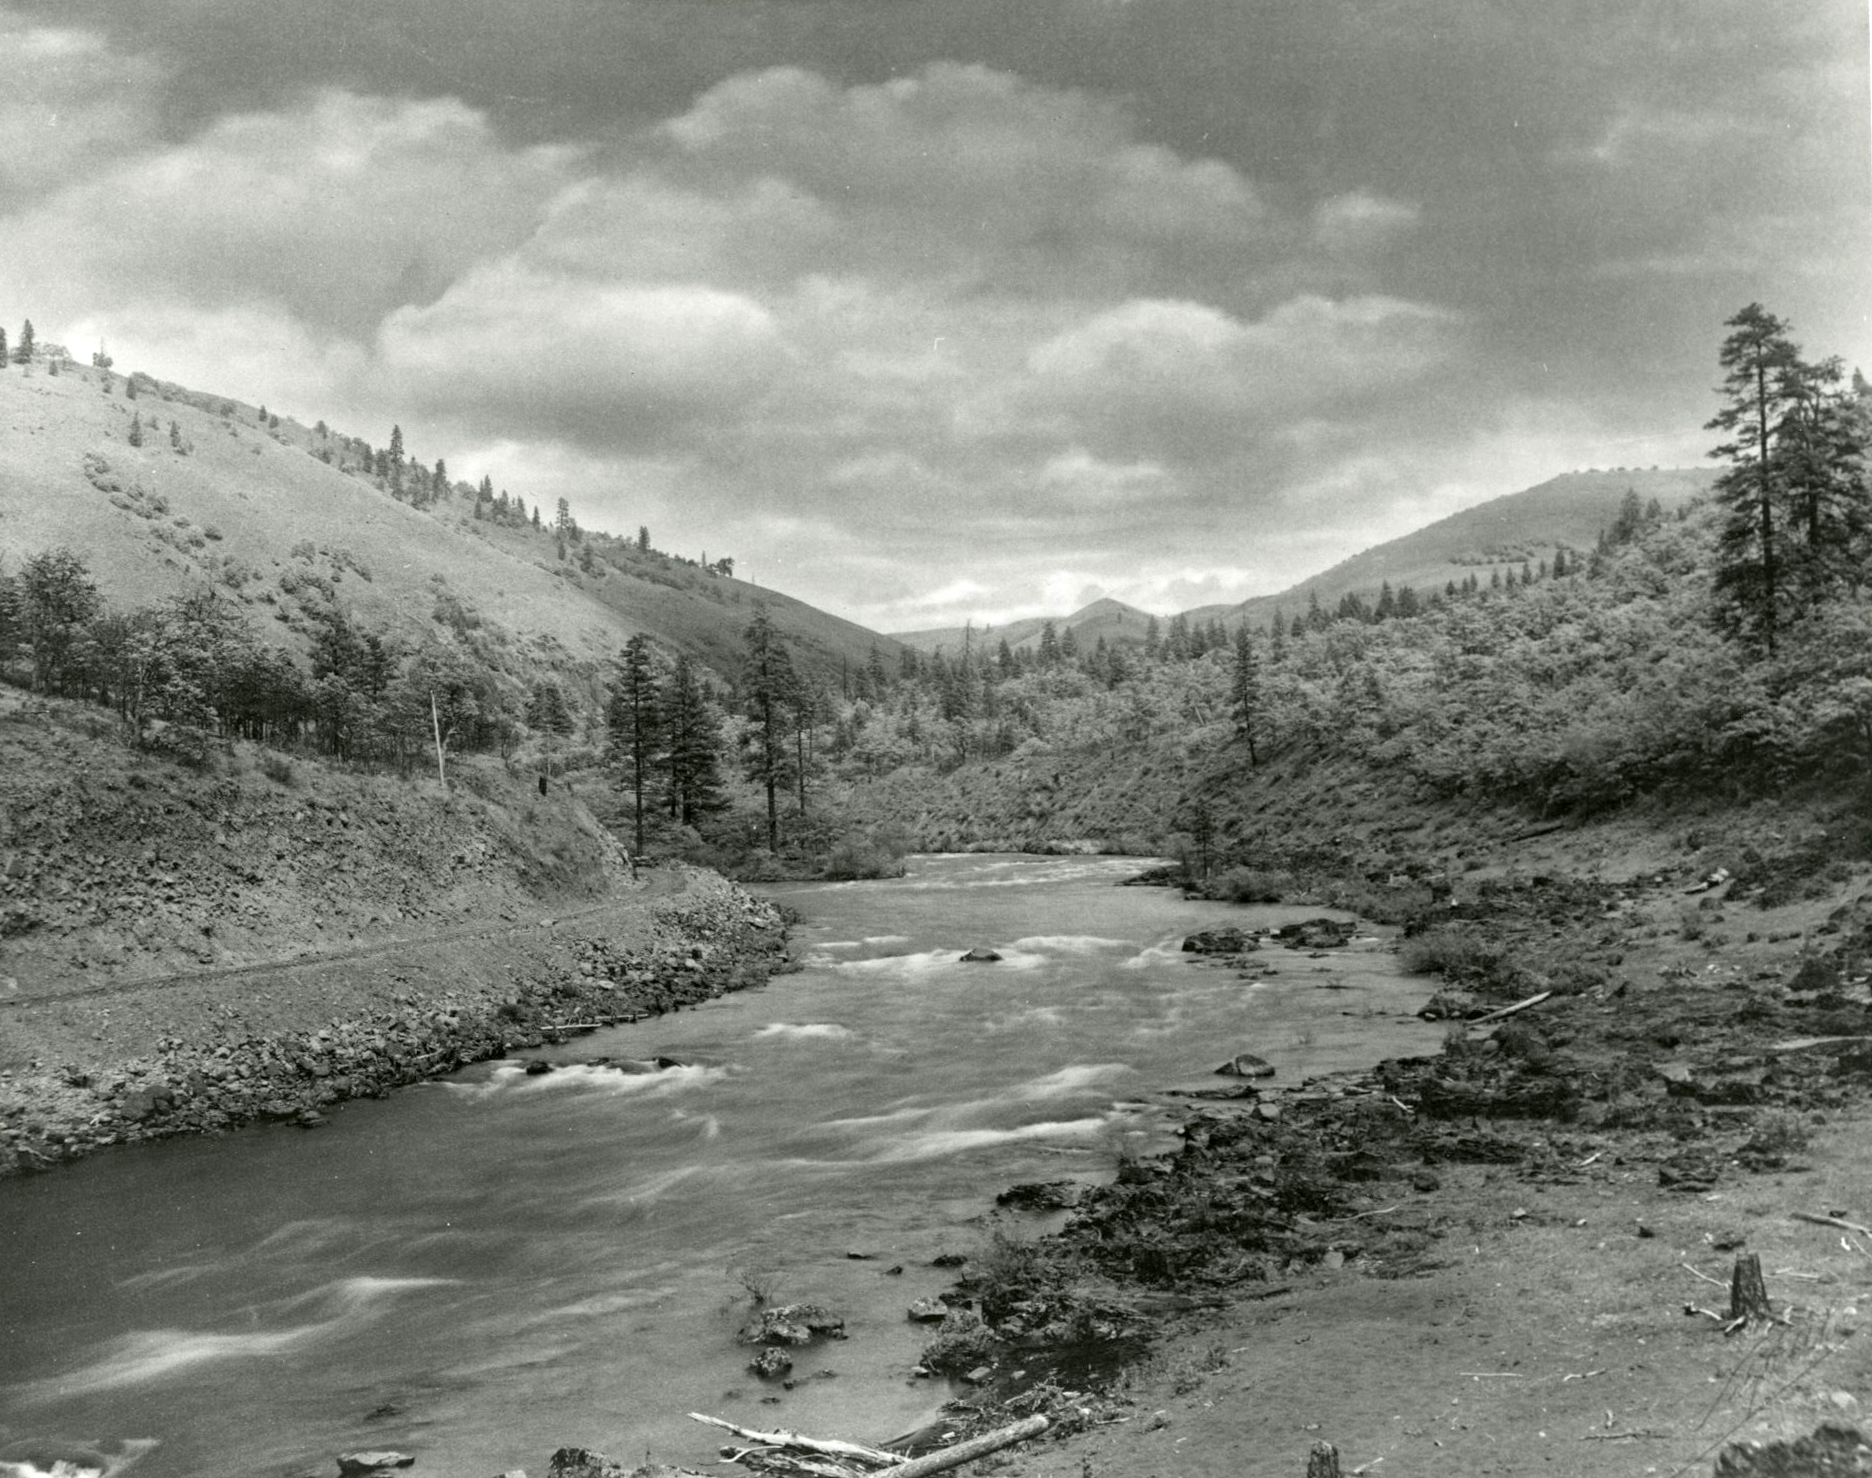 The Klickitat River in Washington, by Lily White